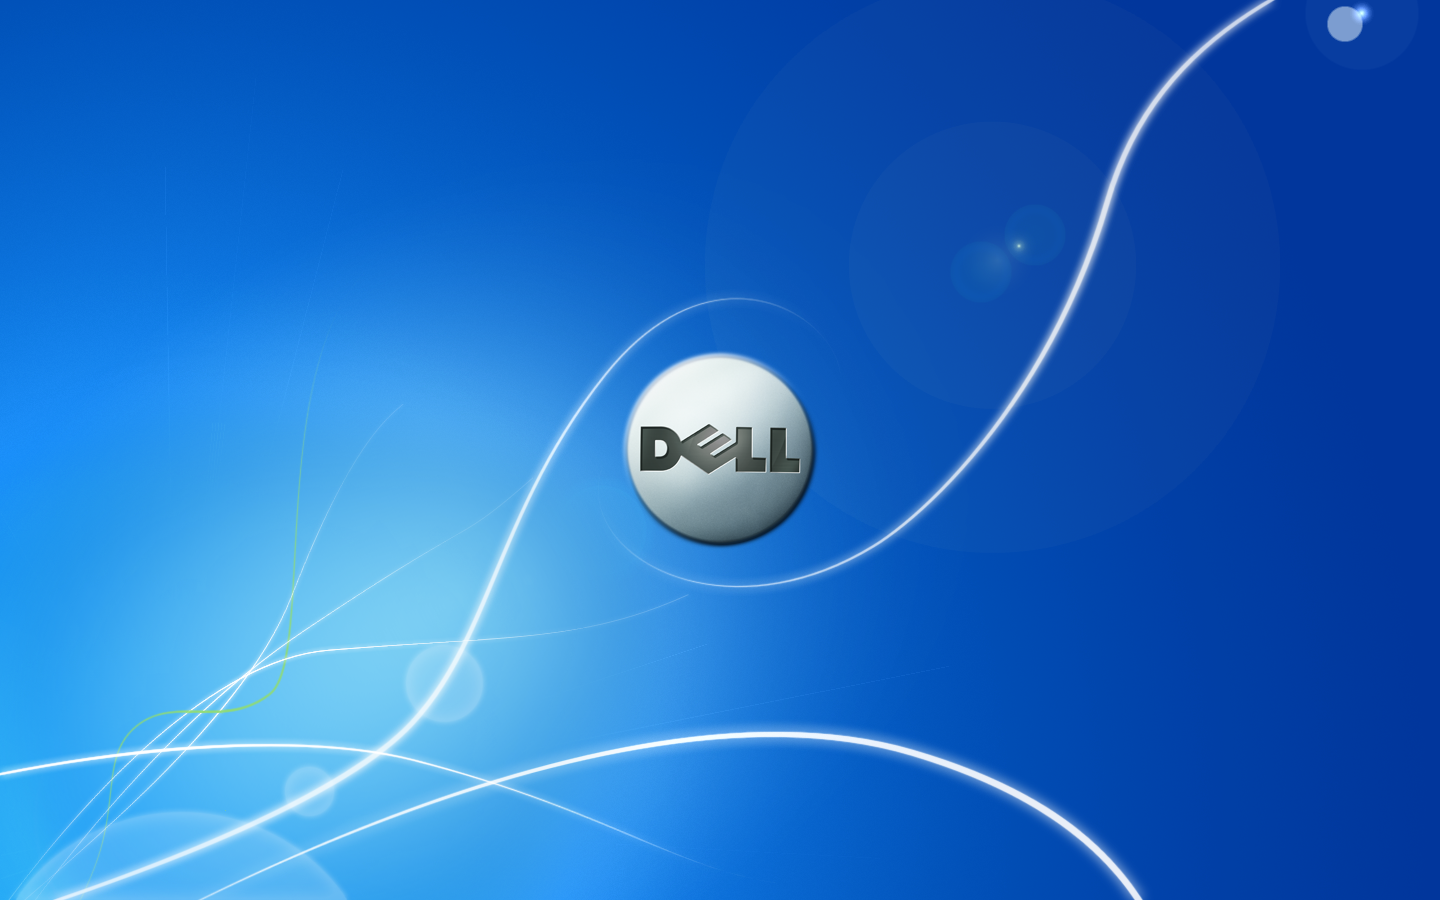 Dell Gaming Laptop Wallpapers Top Free Dell Gaming Laptop Backgrounds Wallpaperaccess